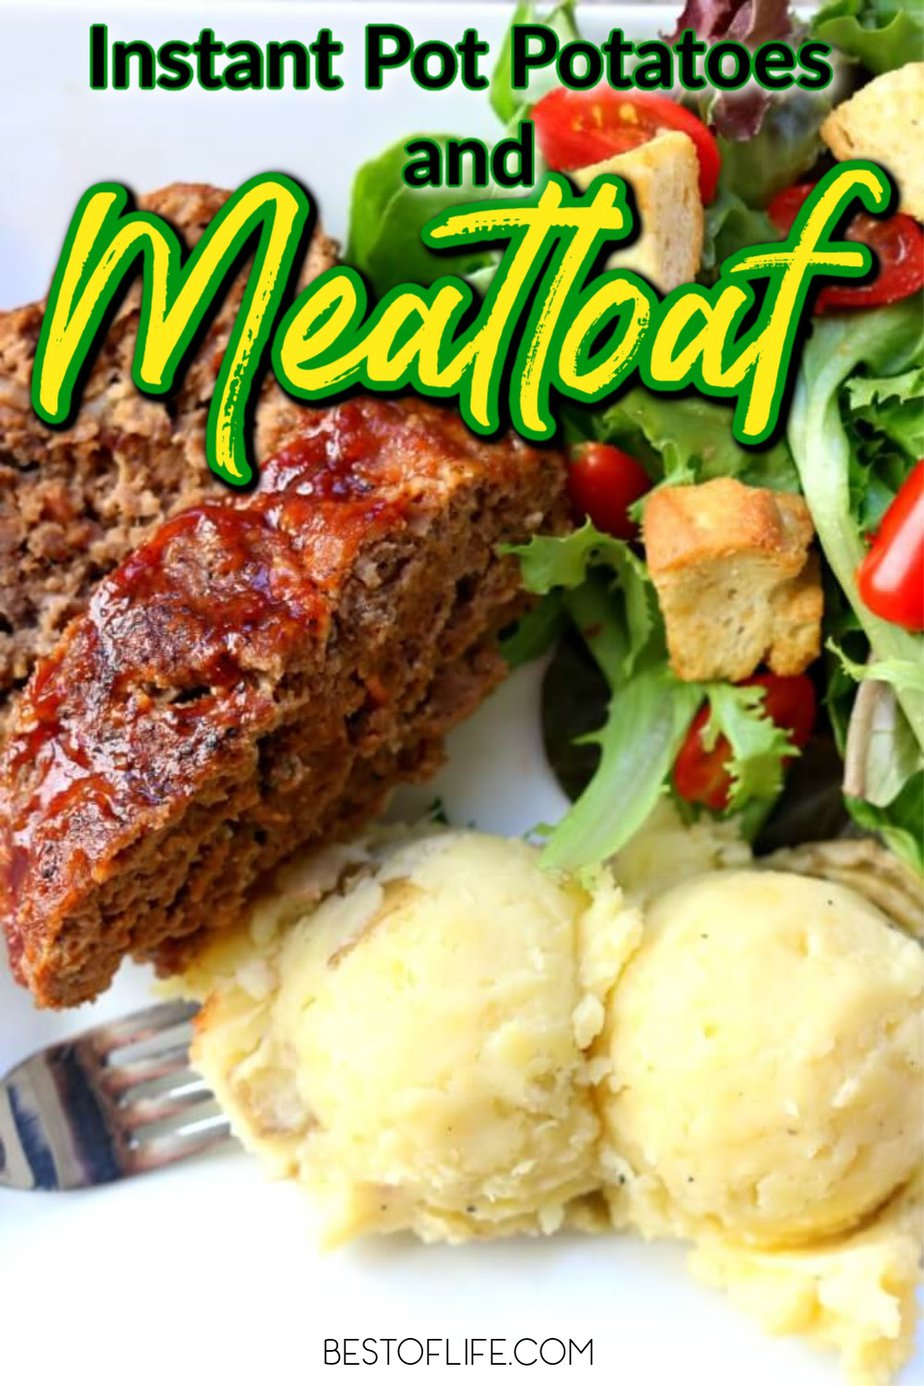 Instant pot meatloaf and mashed potatoes are the definitions of comfort food for many families and you can make these easy recipes when you are short on time. Instant Pot Family Dinner Recipes | Meatloaf Recipes | Instant Pot Dinner Recipes | Instant Pot Mashed Potatoes Recipes #instantpot #recipes